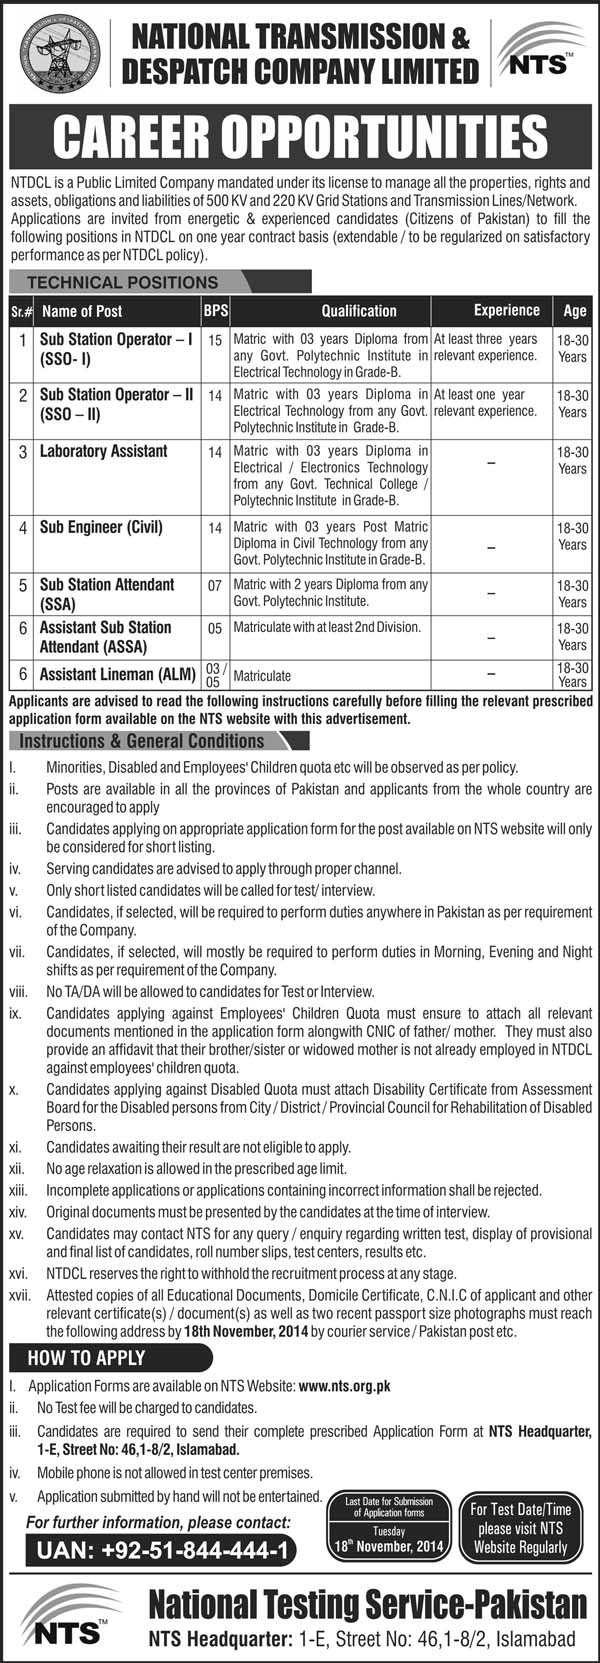 ntdc jobs opportunities